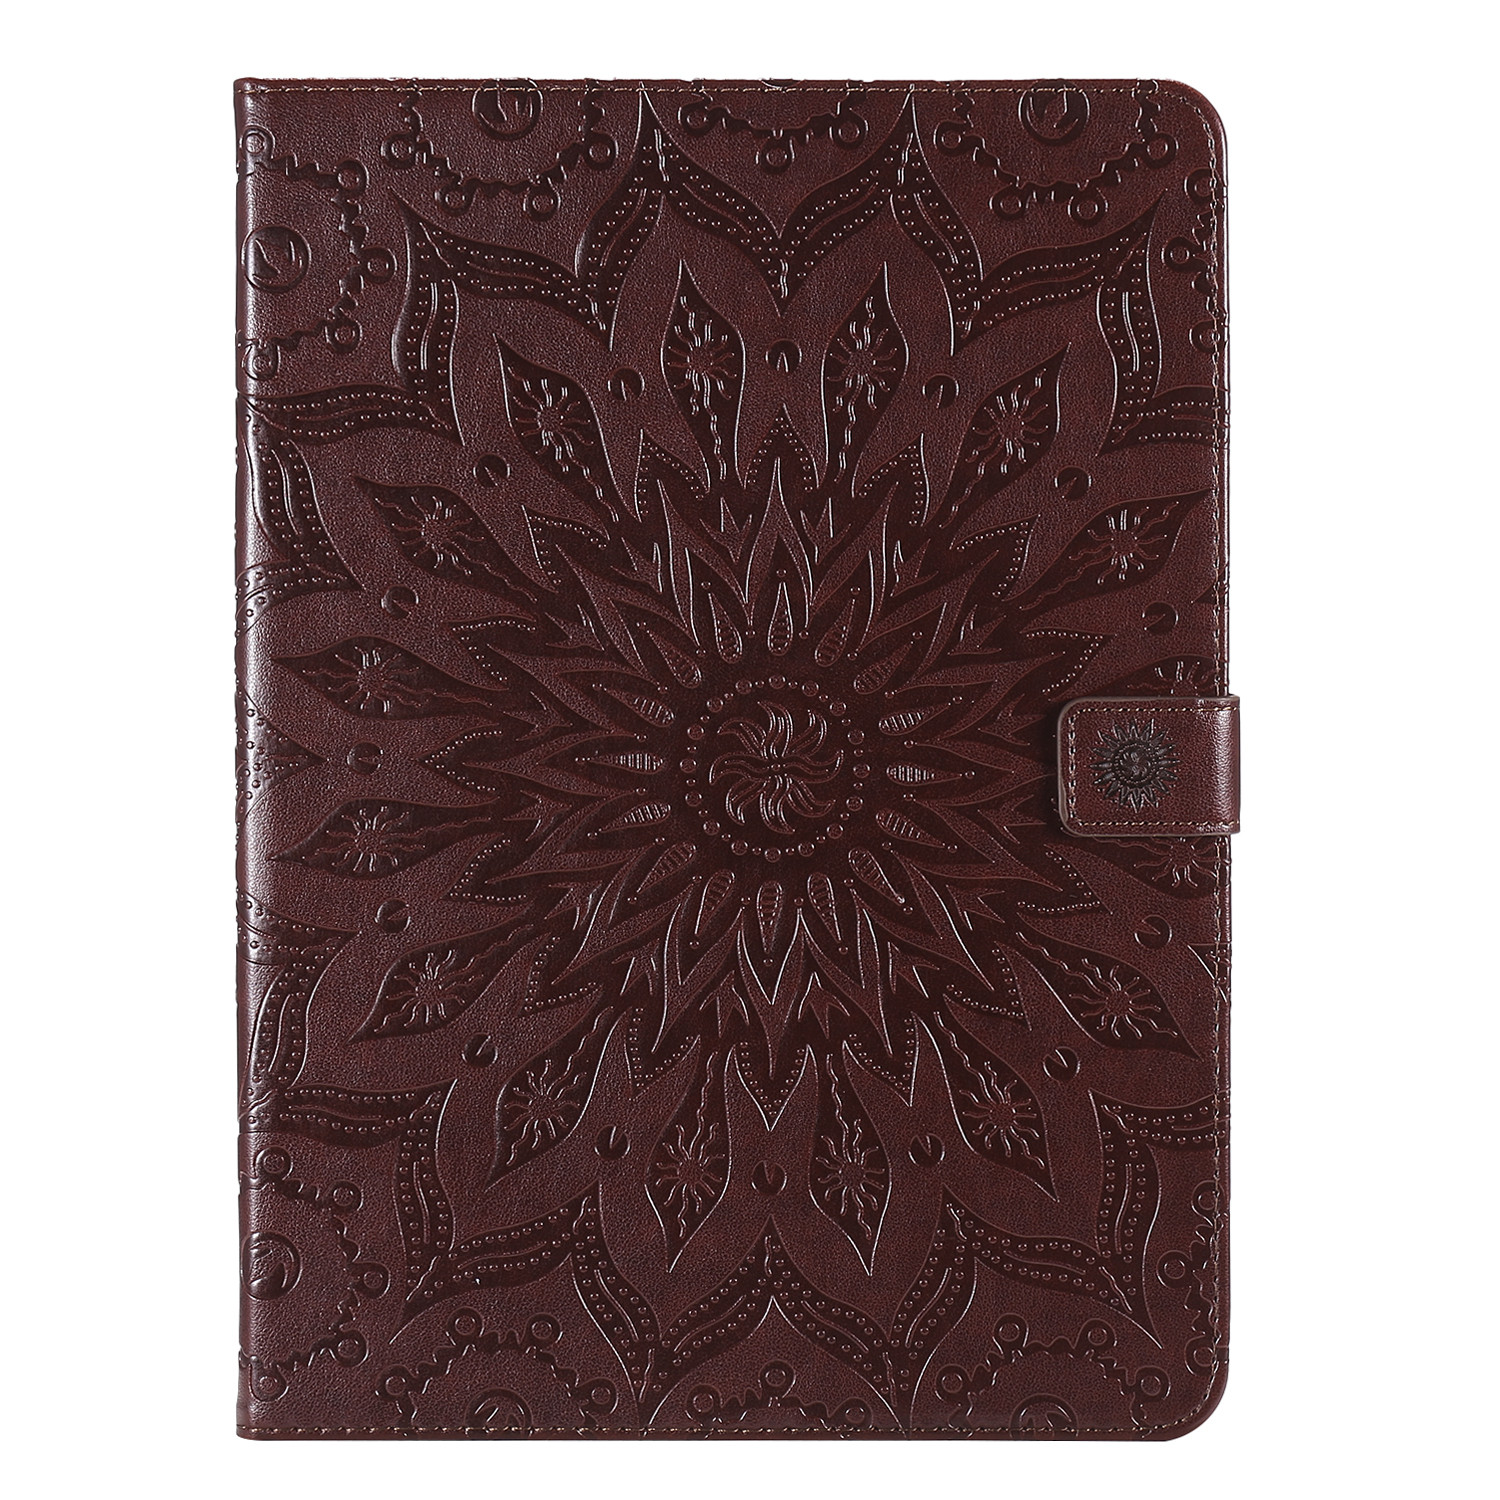 5 Yellow Flower 3D Embossed Cover for iPad Pro 12 9 Case 2020 Leather Protective Shell Skin for